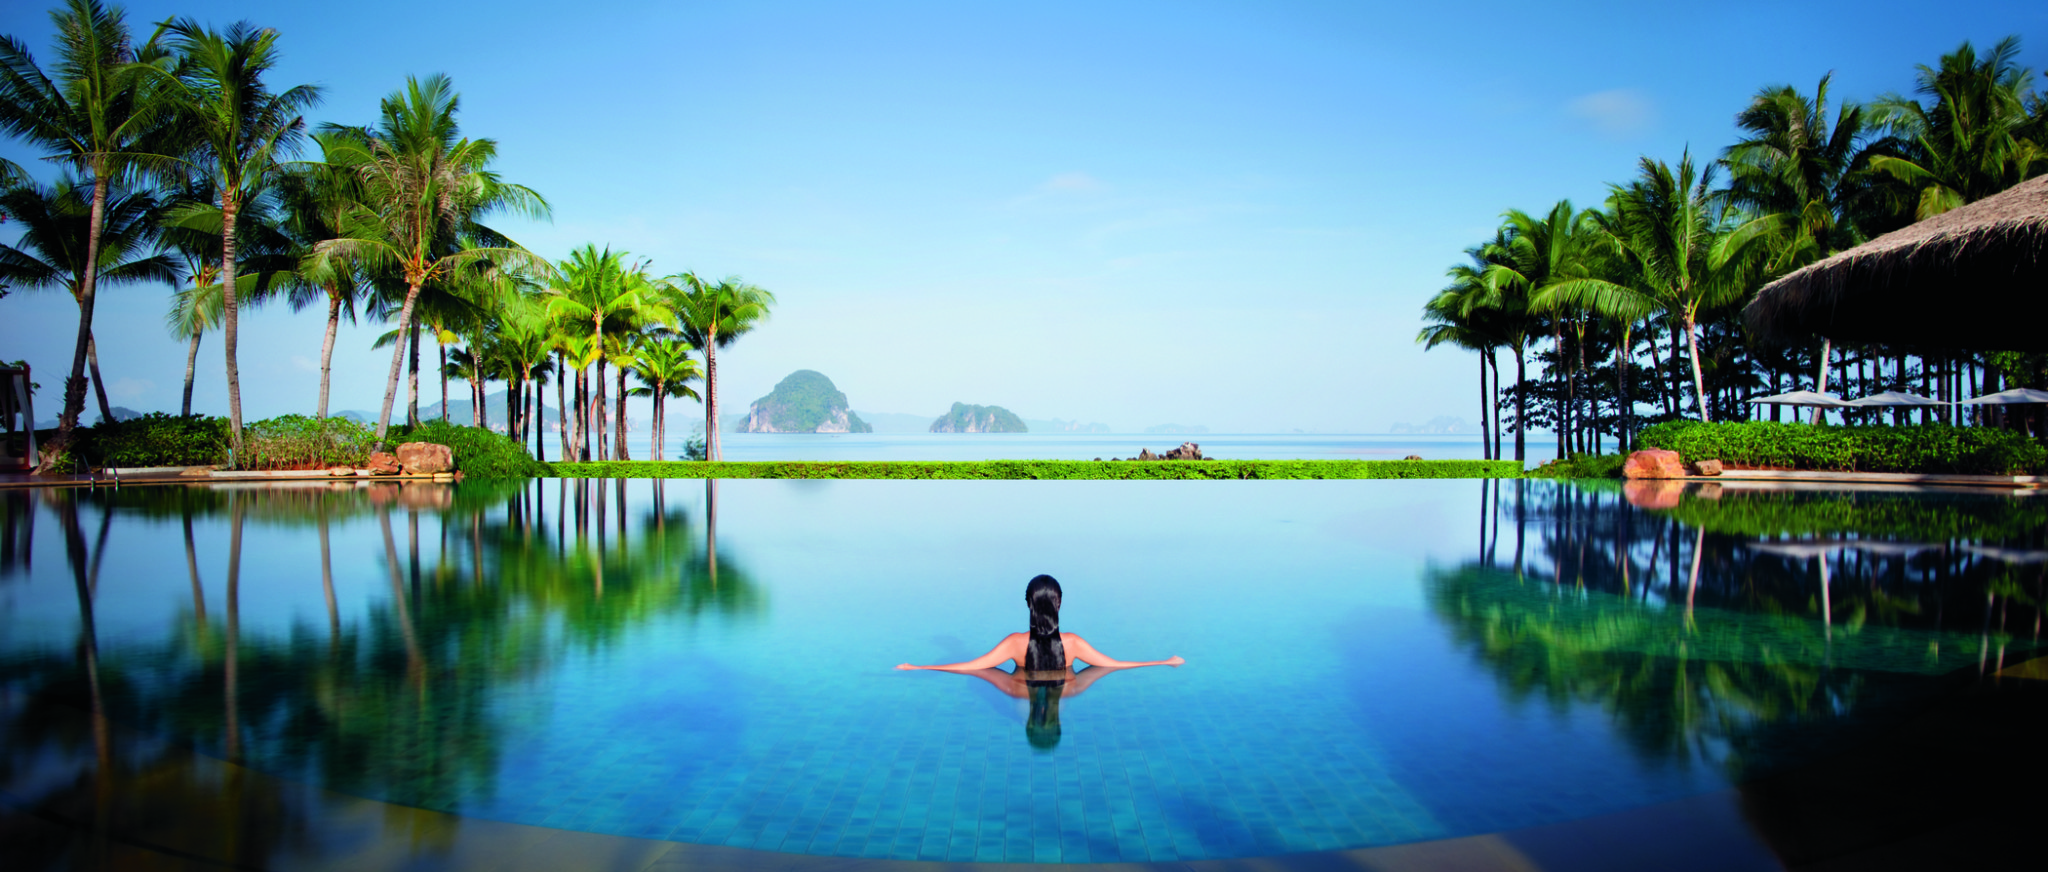 Swimming_Pool_Phulay_Bay_Thailand